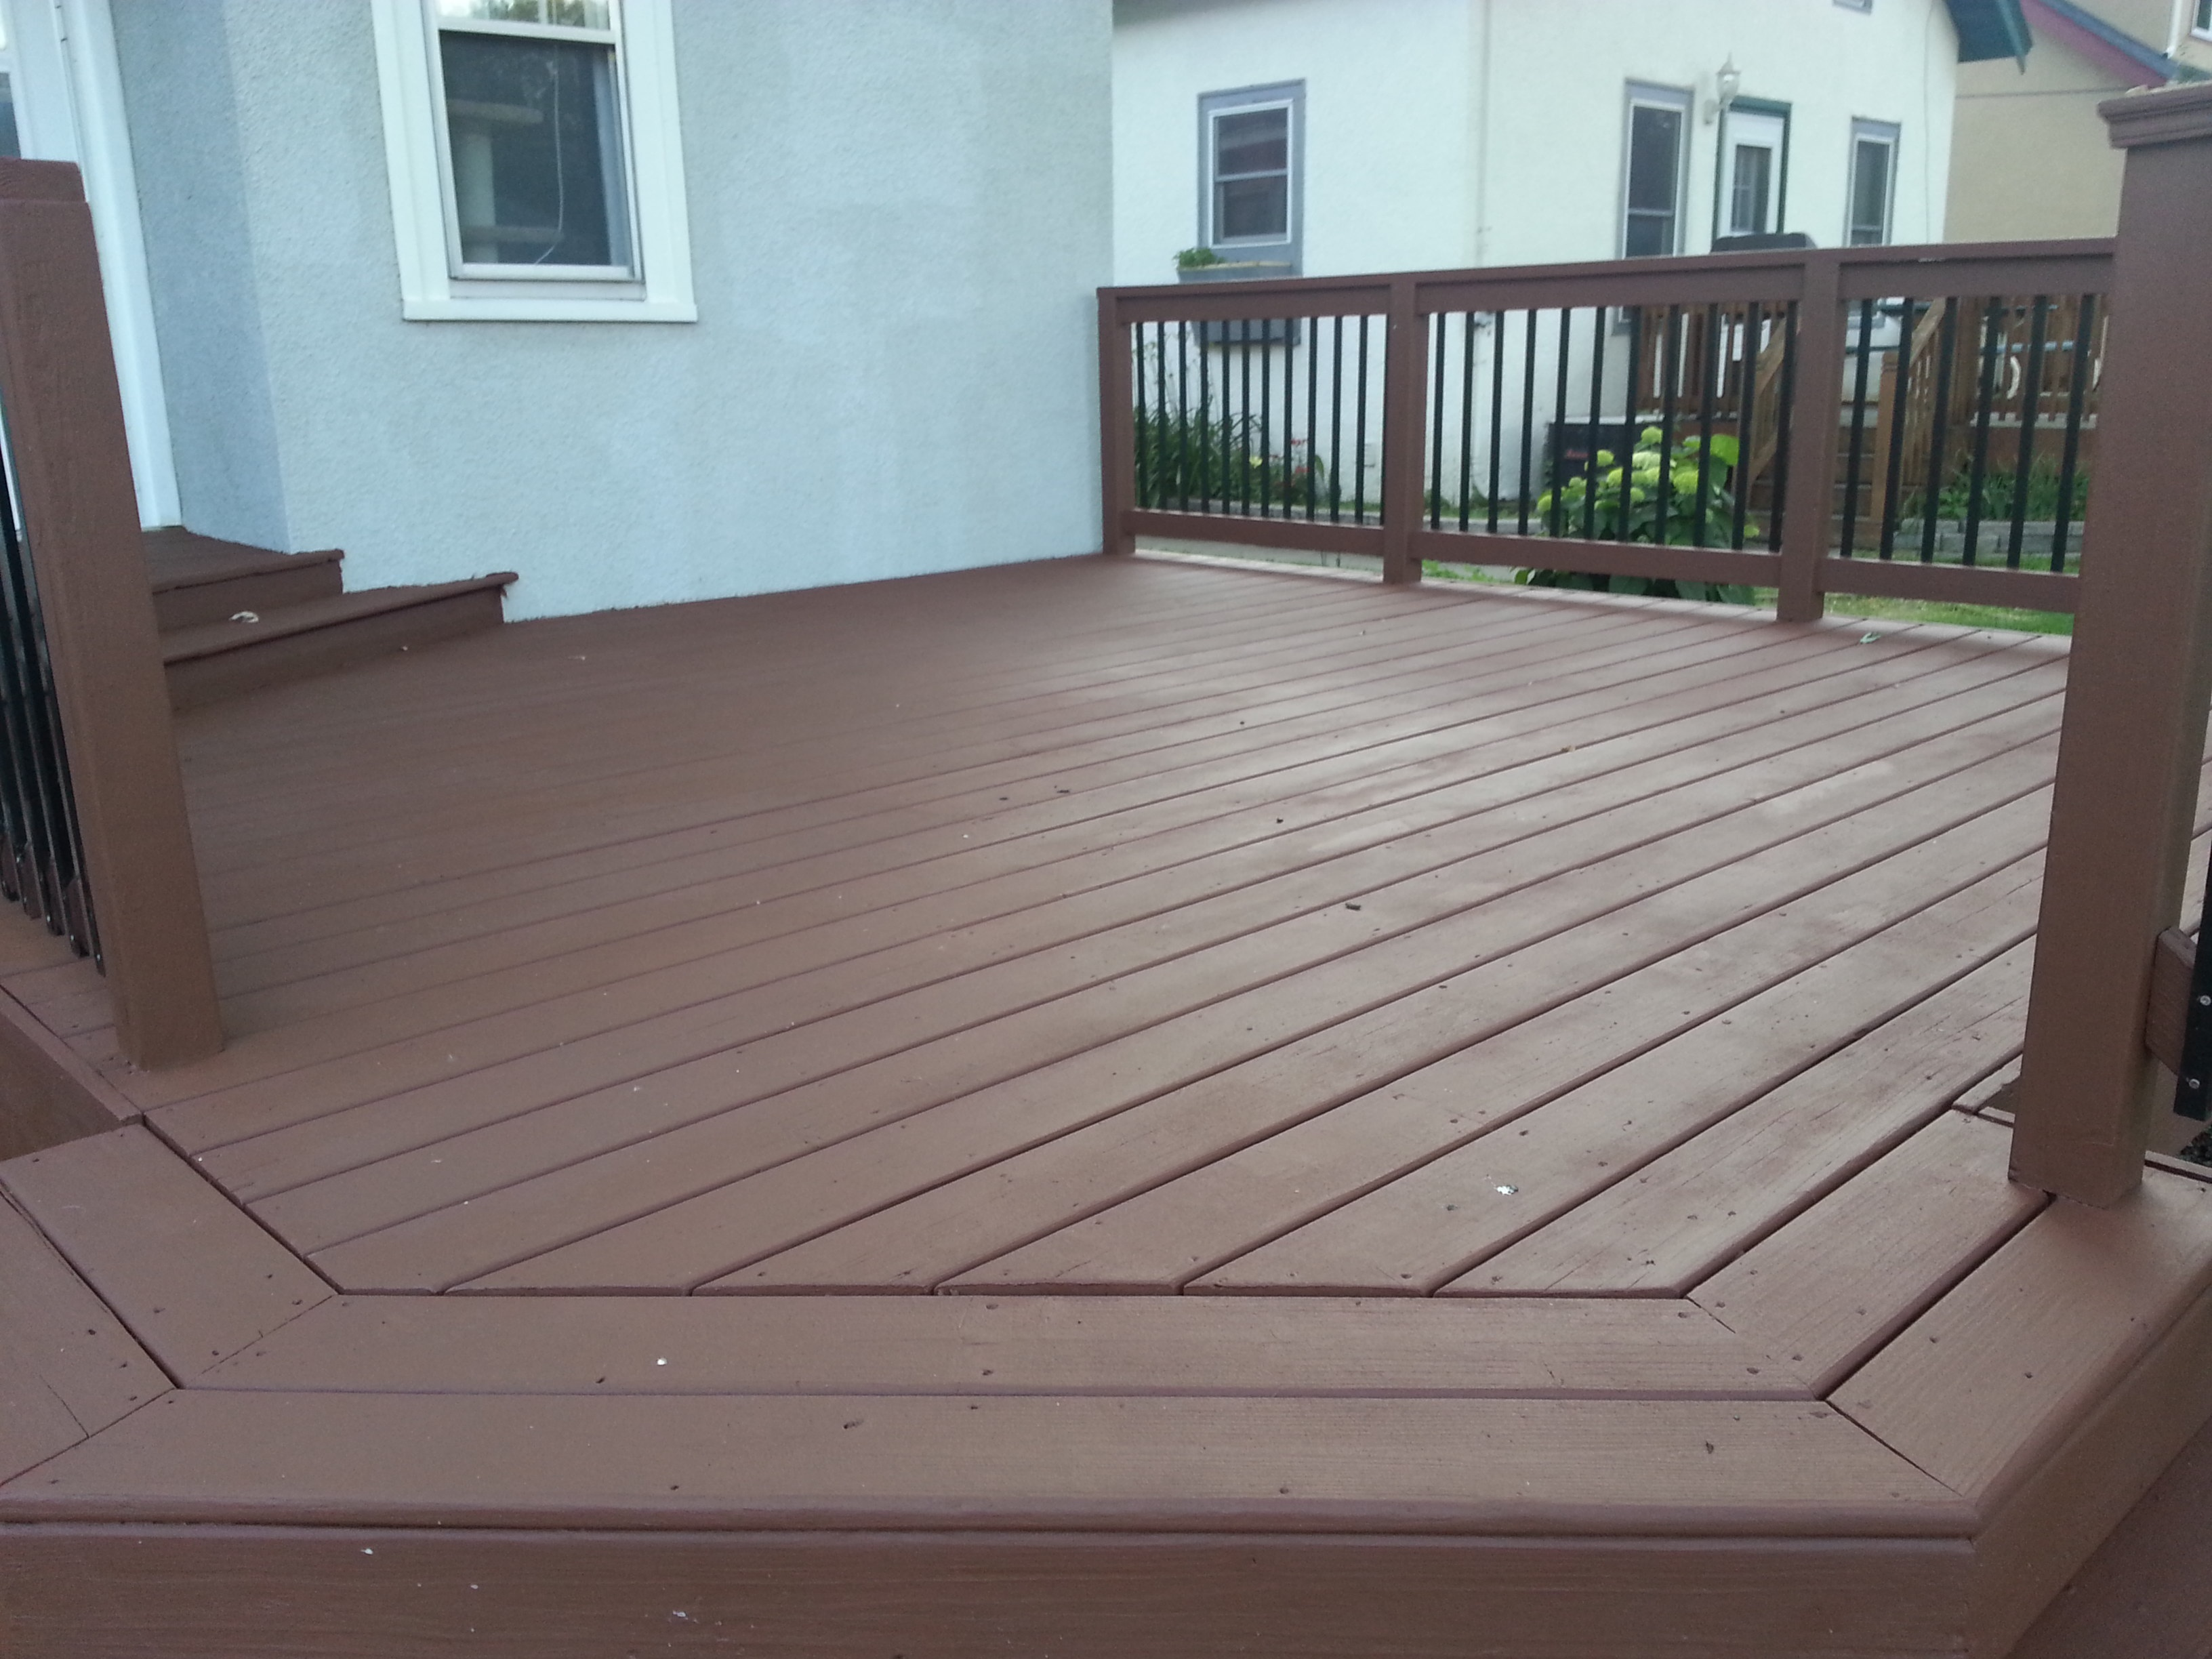 Behr Deck Repair | Behr Deck Over | Behr Deck Restoration Paint